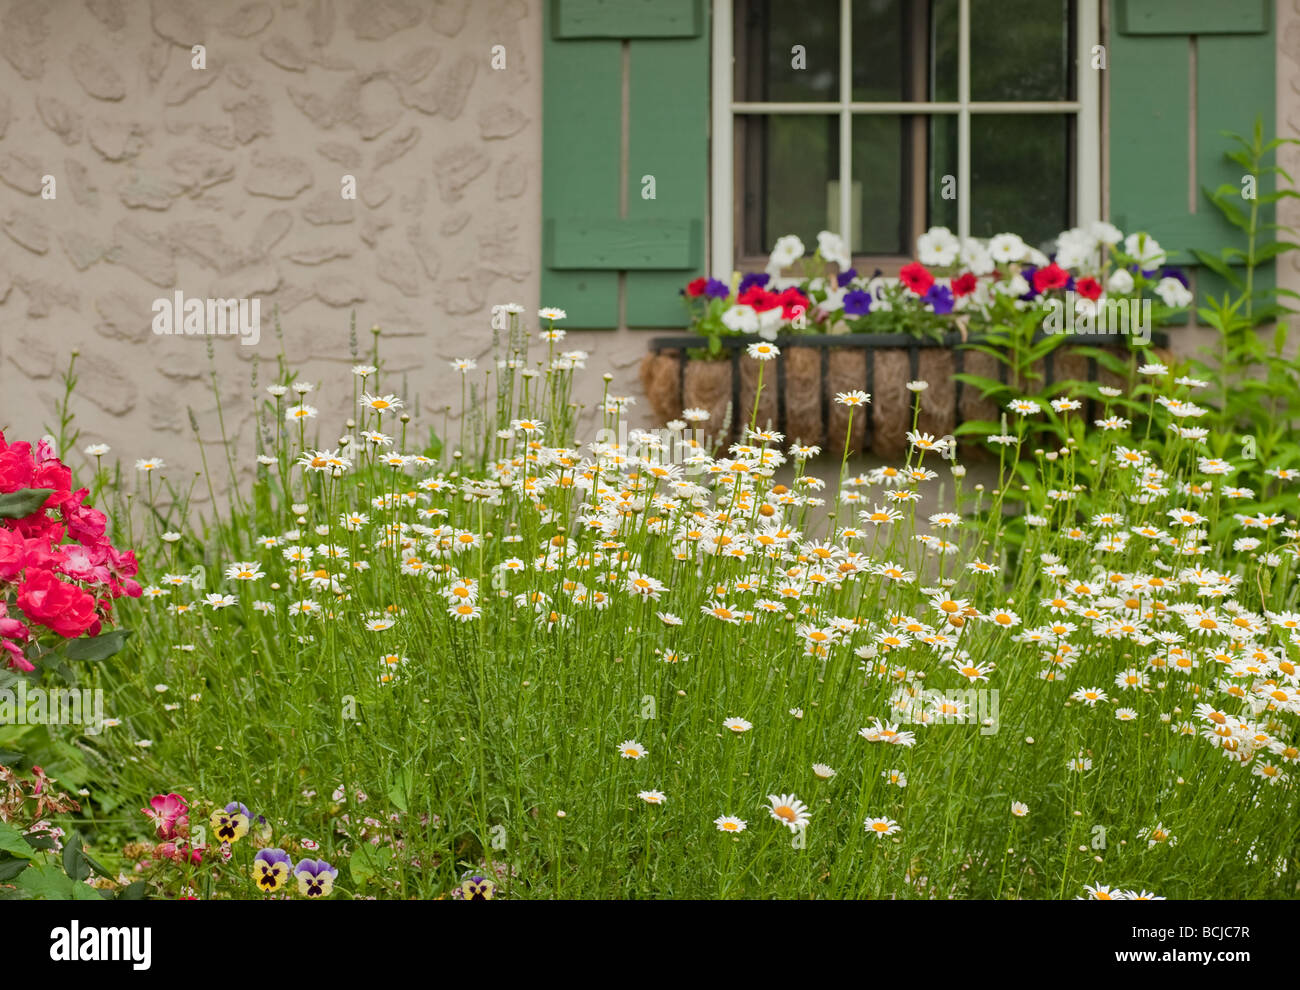 a garden with shasta daisies in front of a window in the garden shed - Stock Image